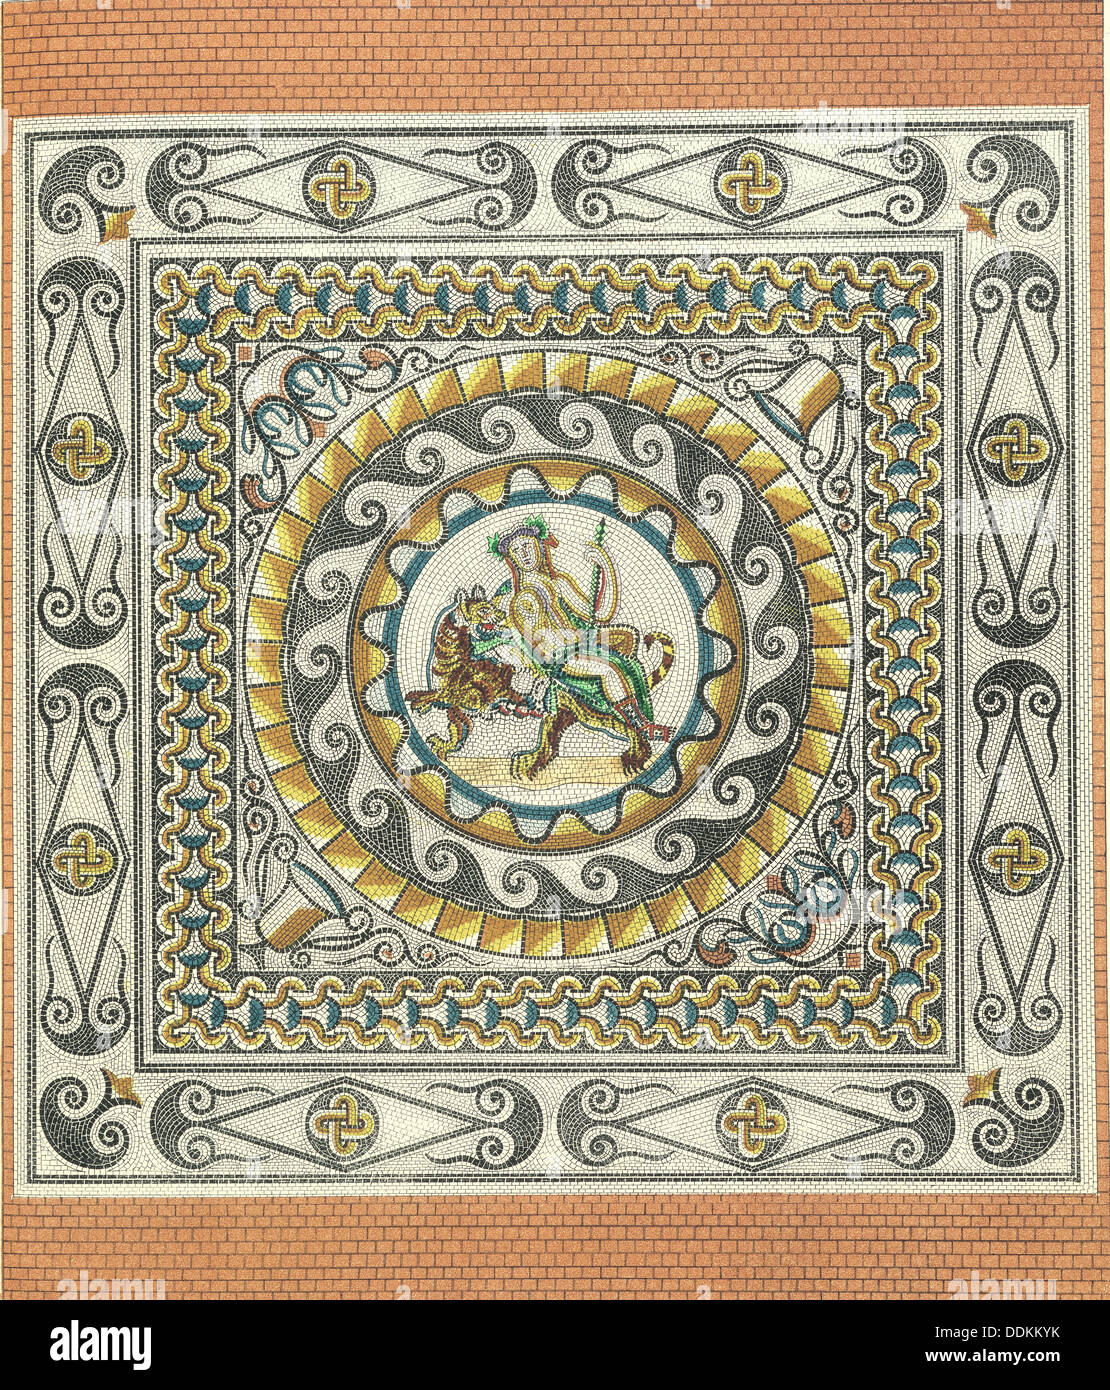 Mosaic floor with Bacchus on a tiger, Roman, from London, (1st century?). - Stock Image